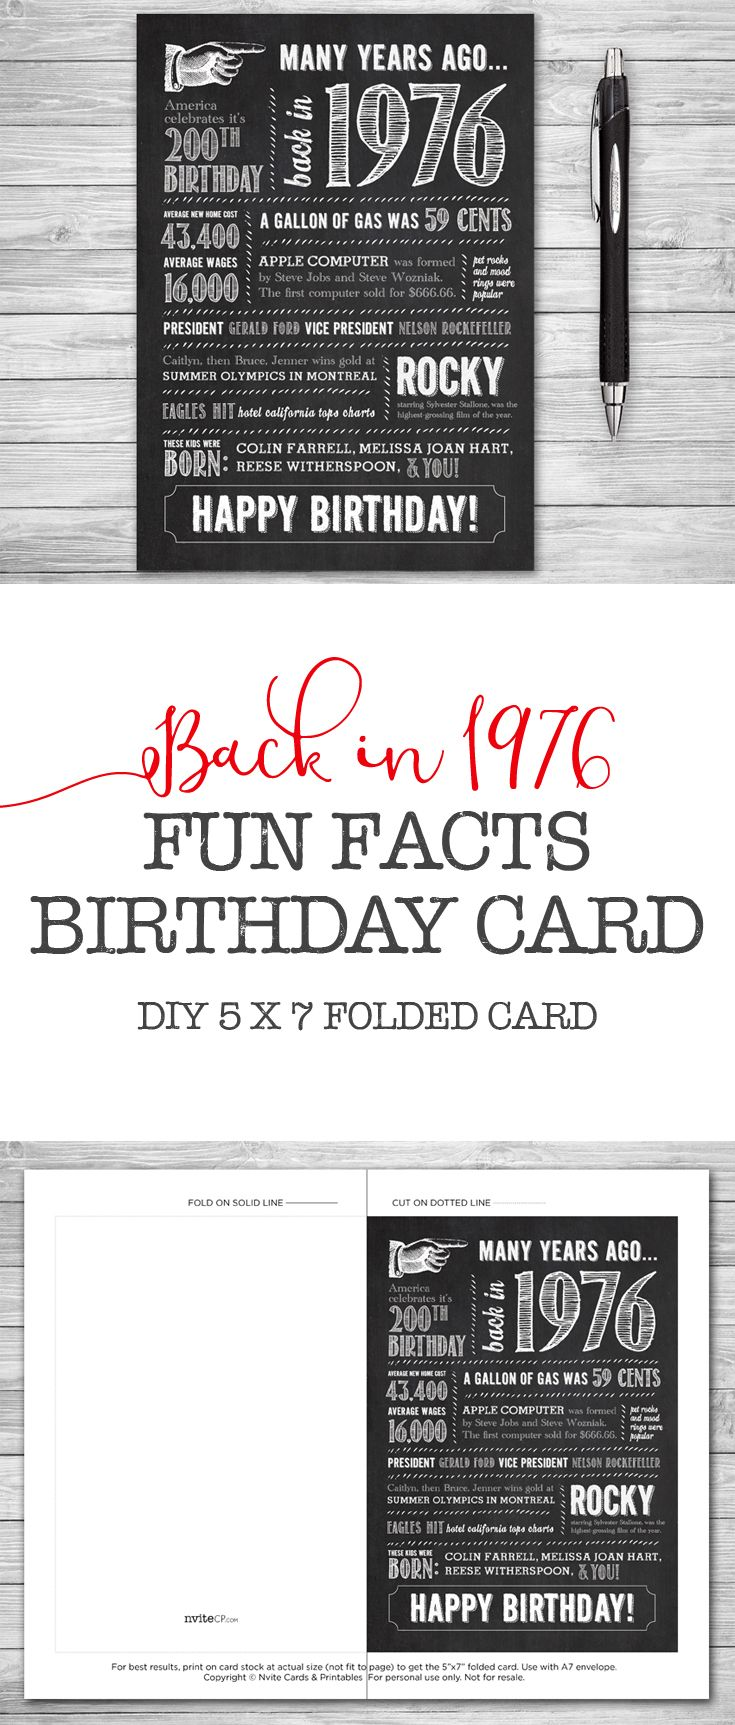 41st Birthday, Printable Card, 5x7 Folded, Many Years Ago Back in ...